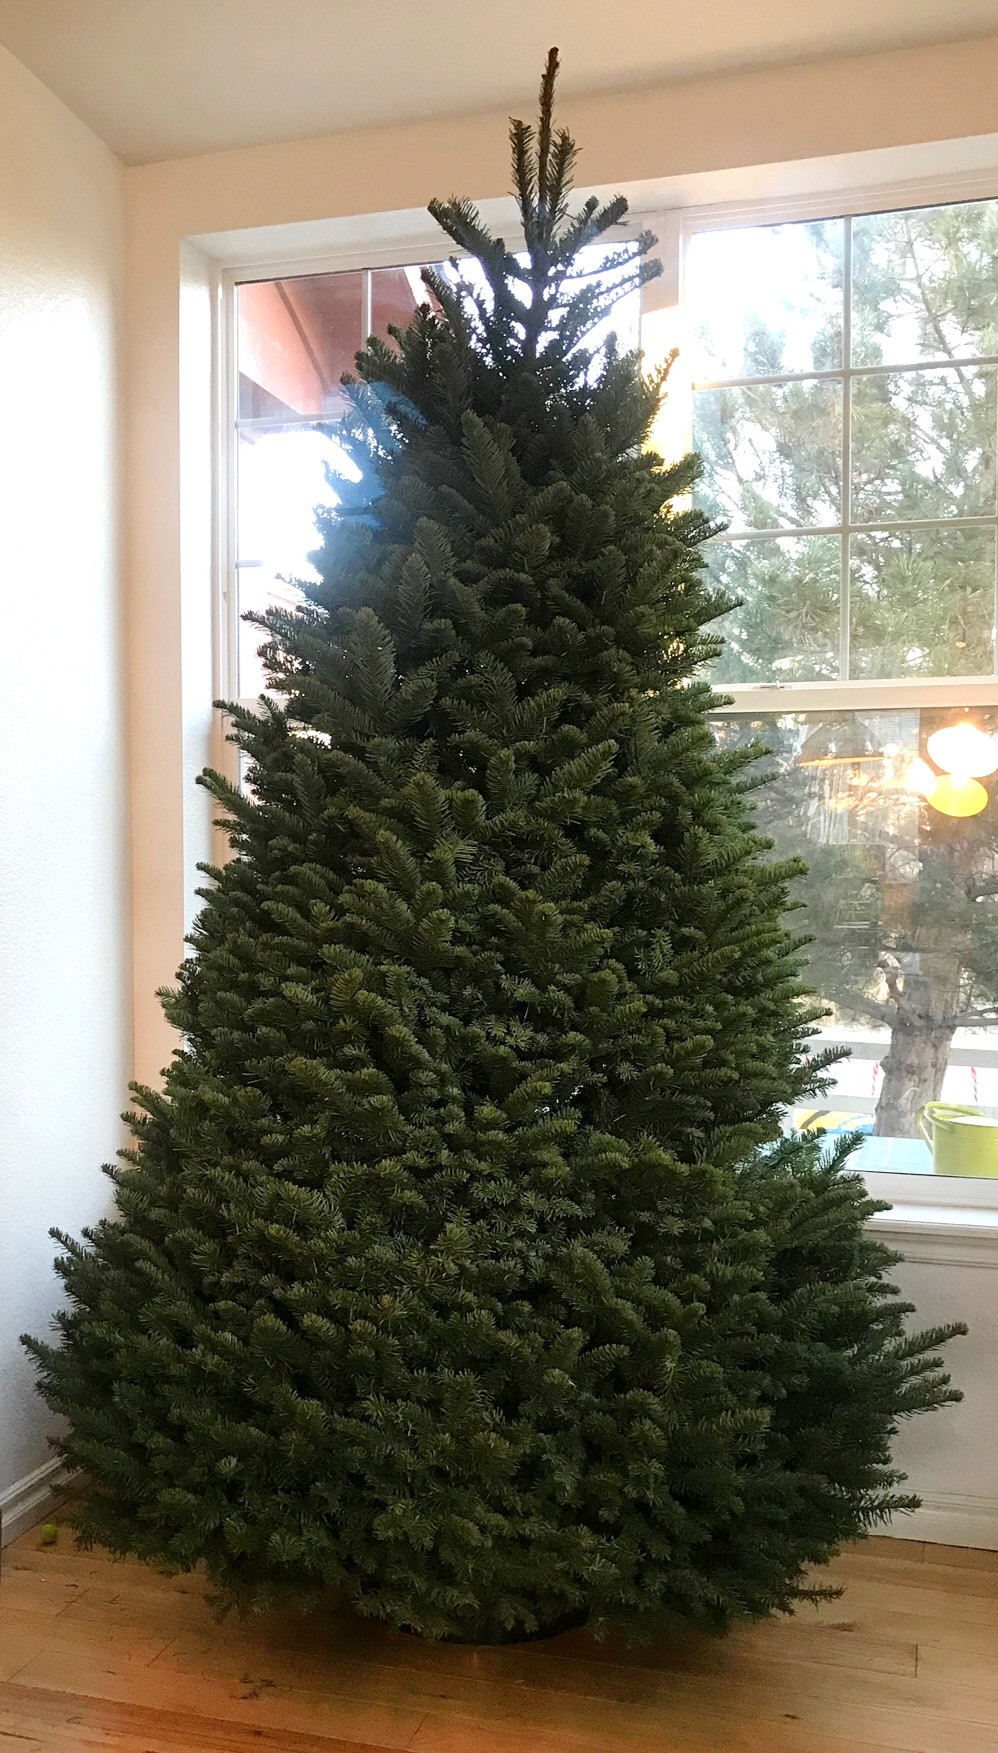 A beautiful, fresh, full and lush Noble Fir Christmas tree ready to be decorated.